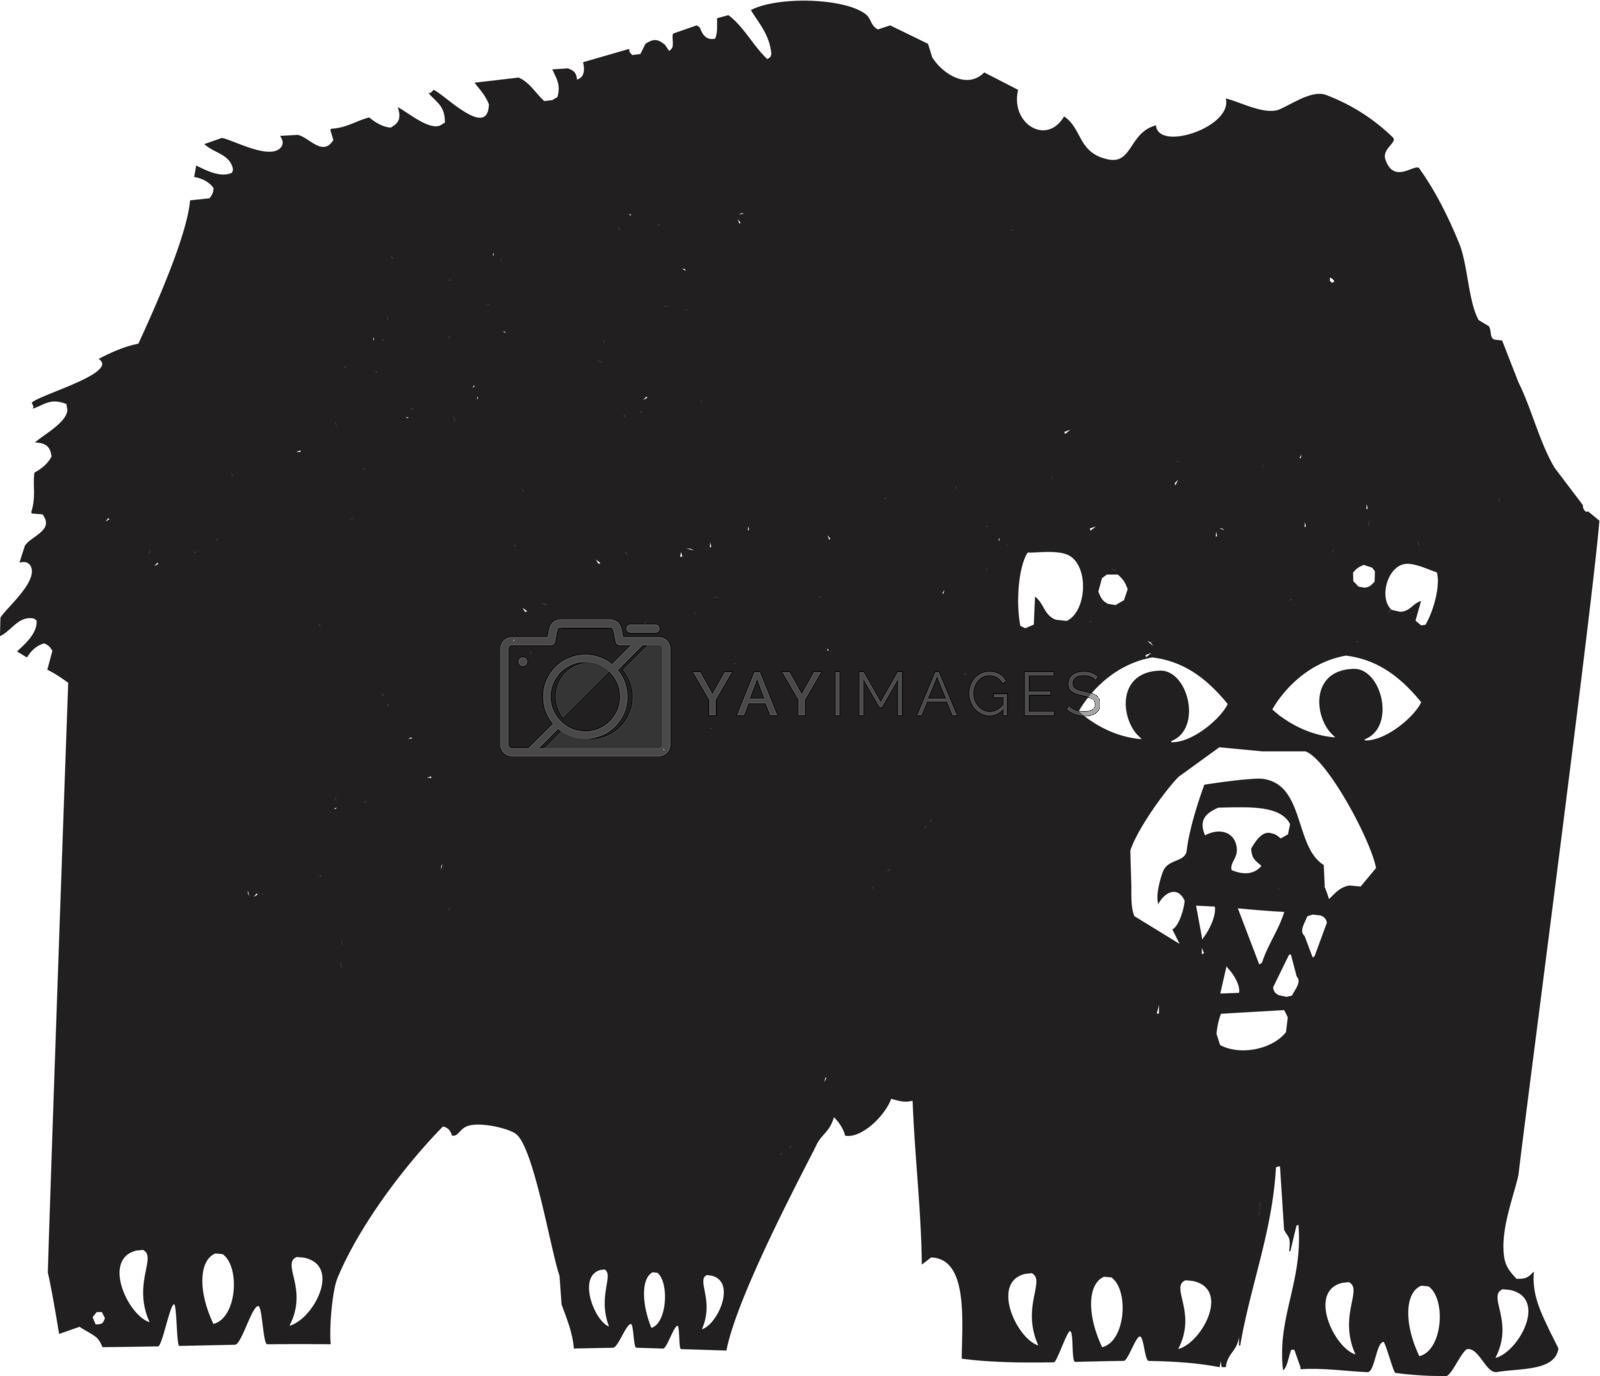 Woodcut style image of a a growling black bear.